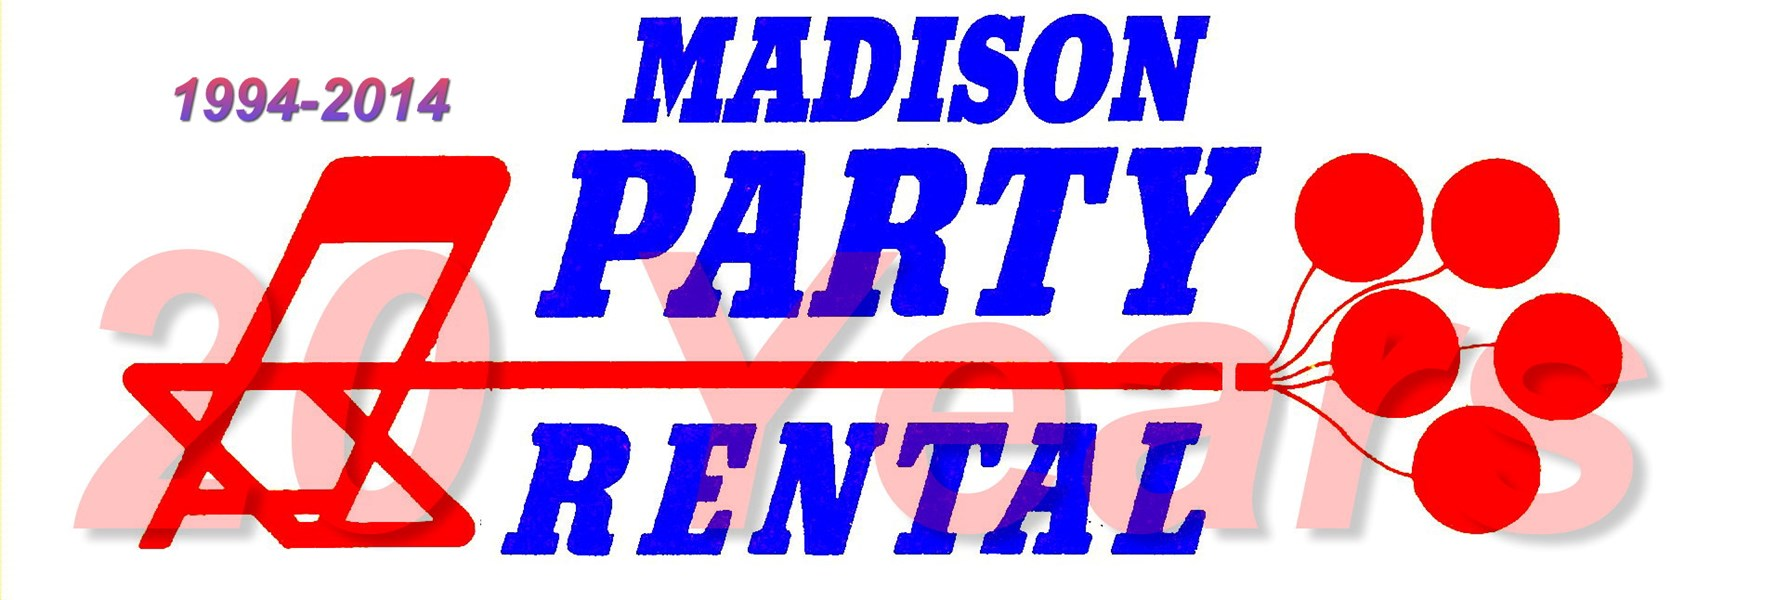 Madison Party Rental - Party Inflatables - Madison, WI